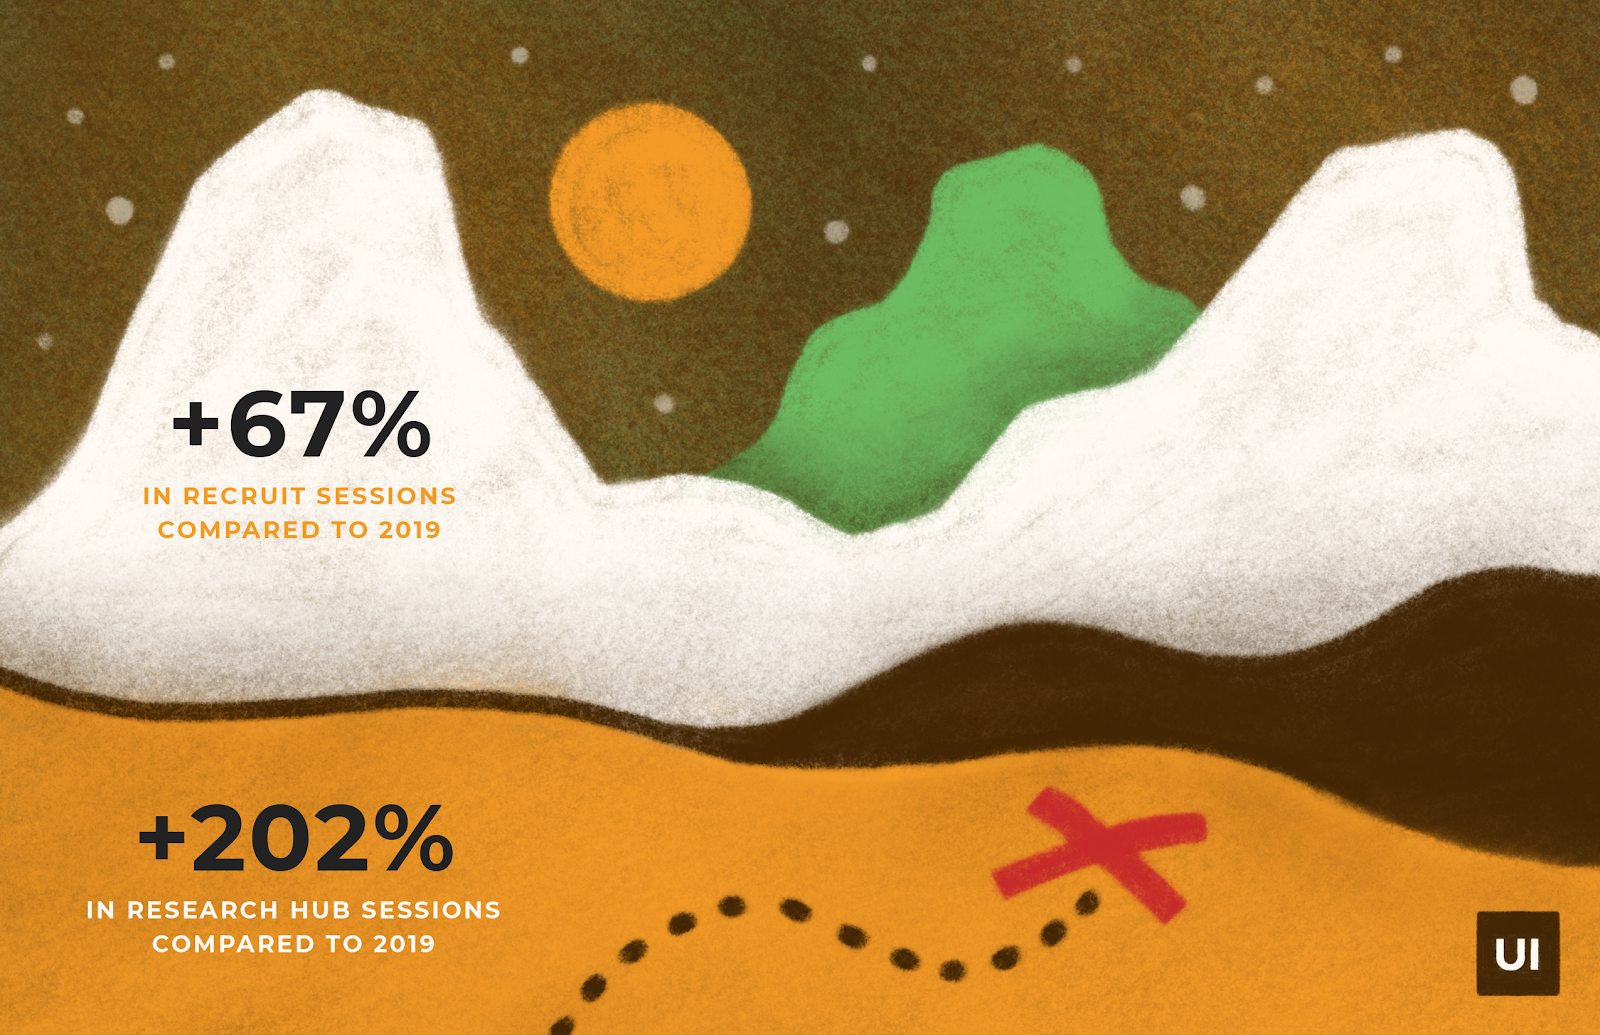 Stylized mountains and moon infographic with User Interviews data about UXR research sessions.